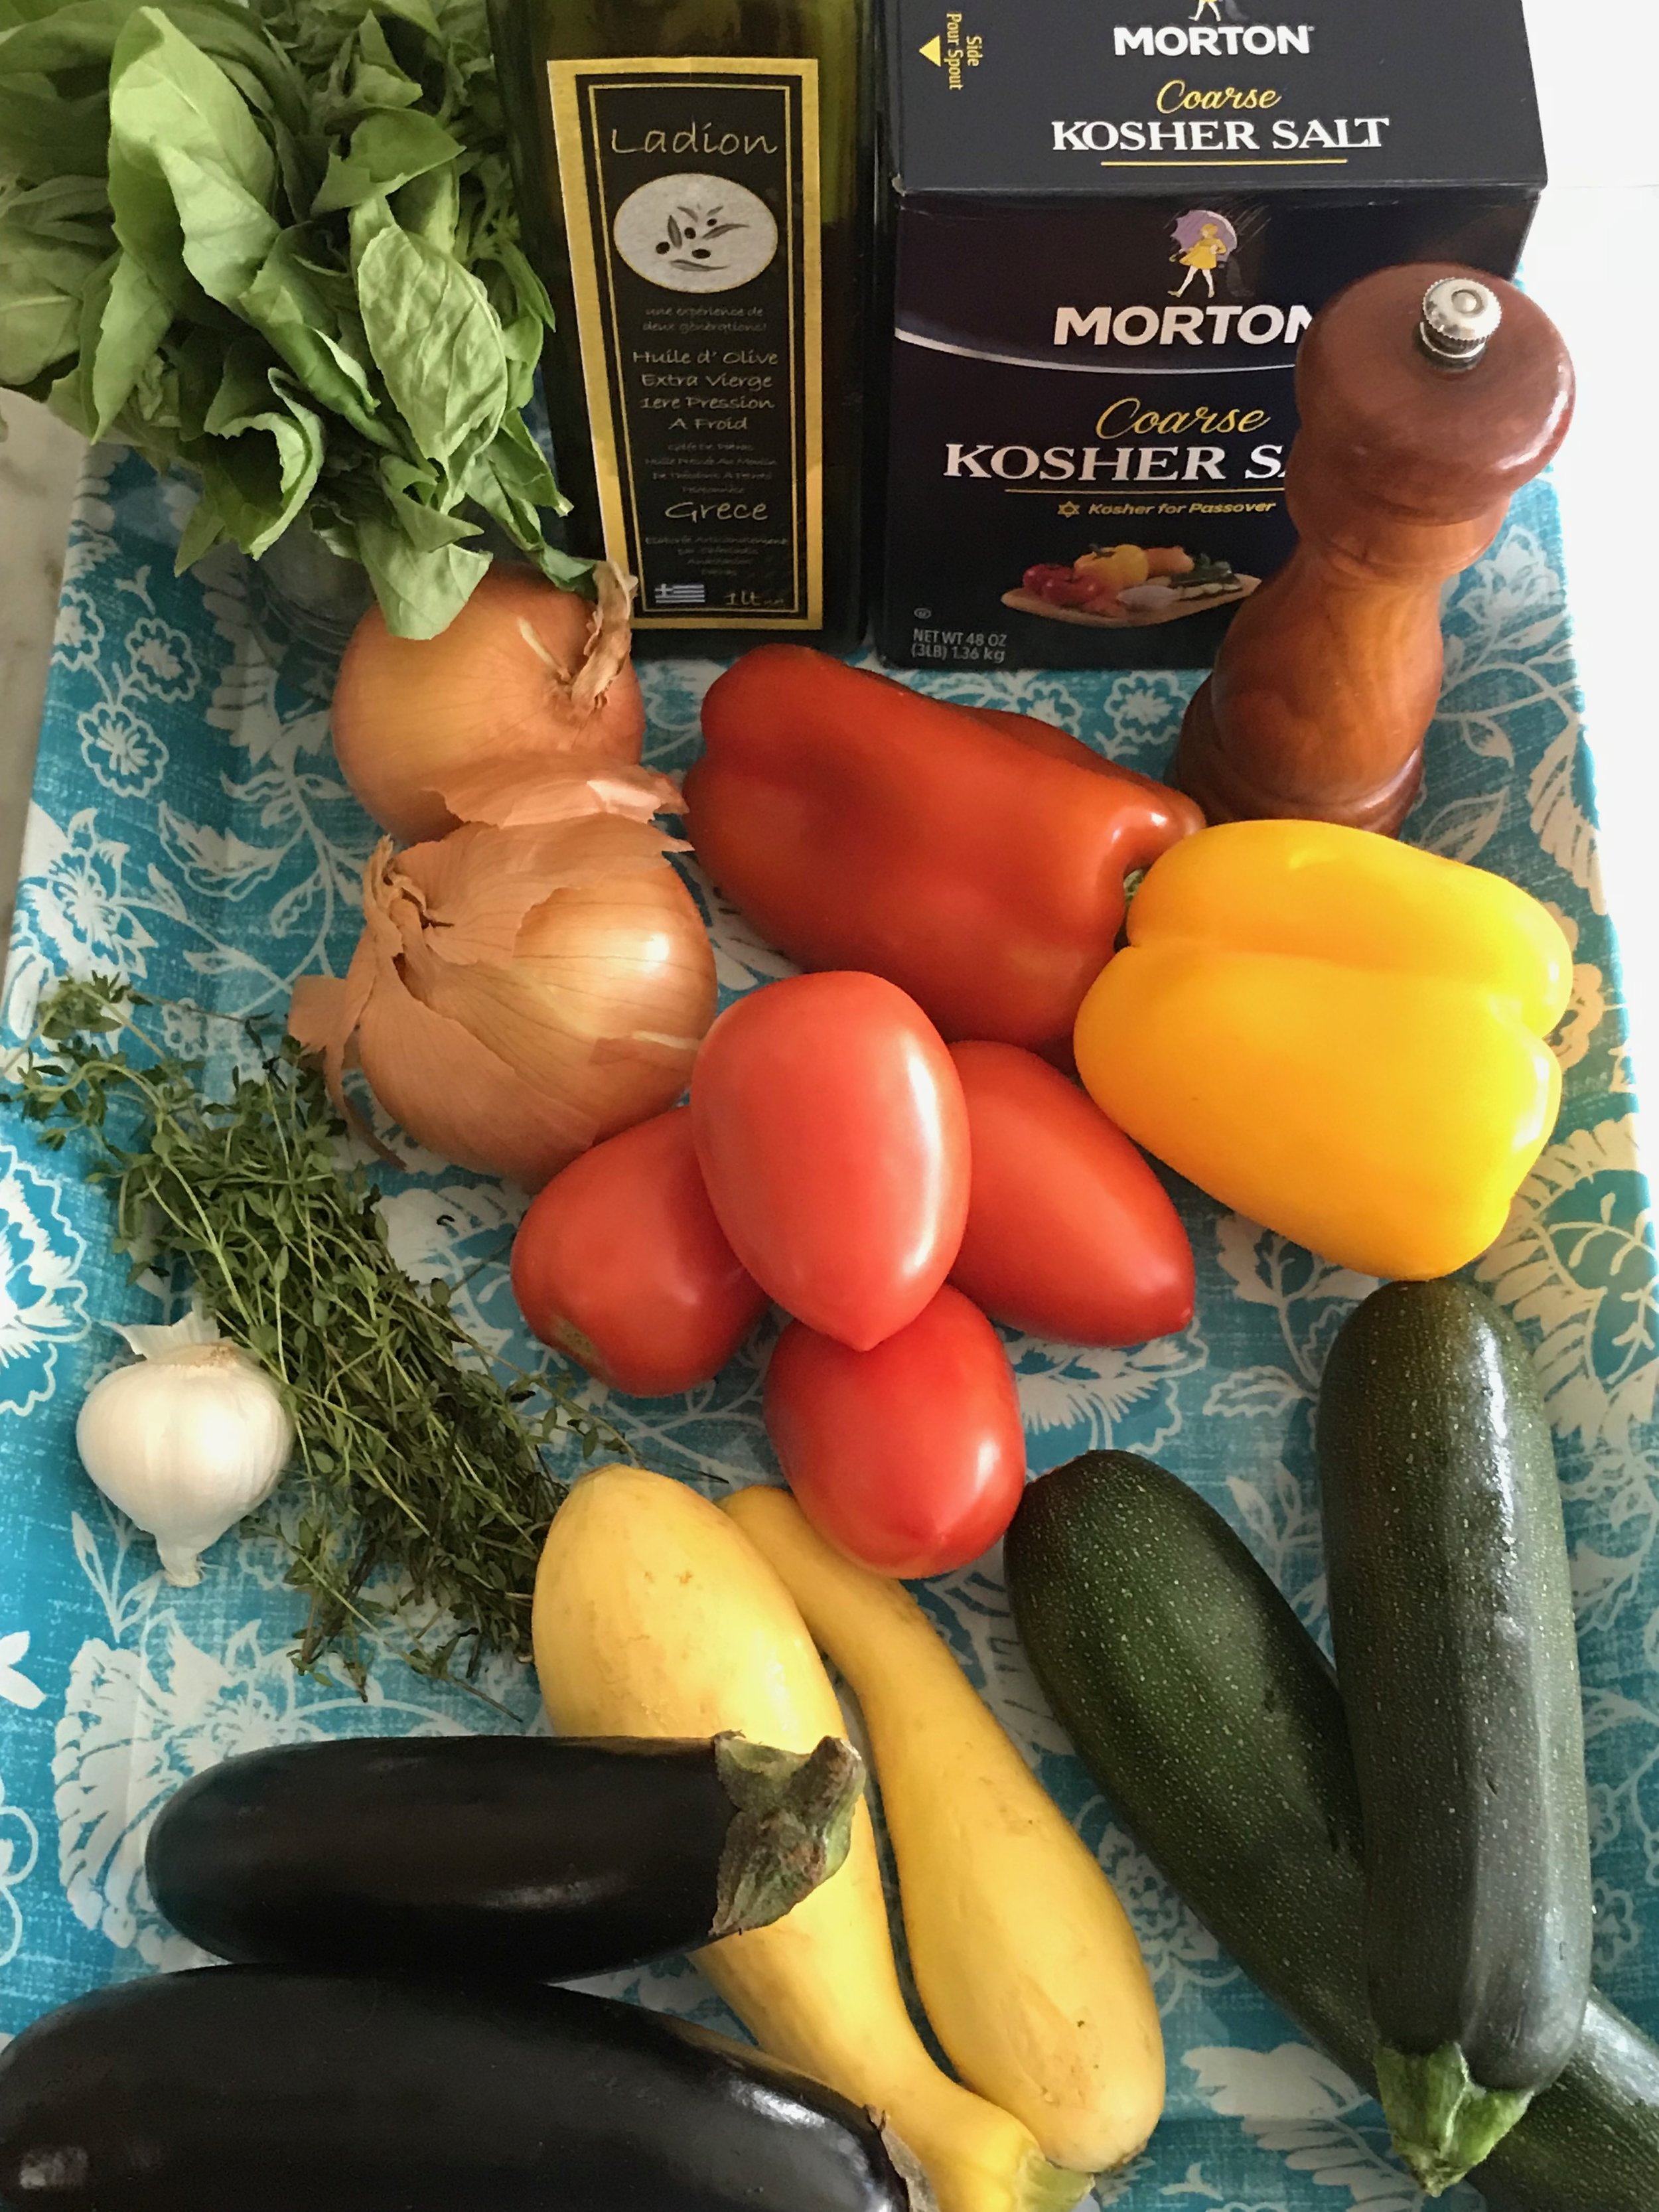 "Ingredients - ¼ cup olive oil2 medium onions, cut in half and sliced into thin ½ moons, about ¼"" thick1 red pepper1 yellow pepper2 cloves garlic, crushed2 Italian, Japanese, or small eggplant2 medium zucchini squash2 medium yellow squash4 Roma tomatoesSalt & pepper2T fresh thyme2T olive oil 2T fresh basil, chiffonade"